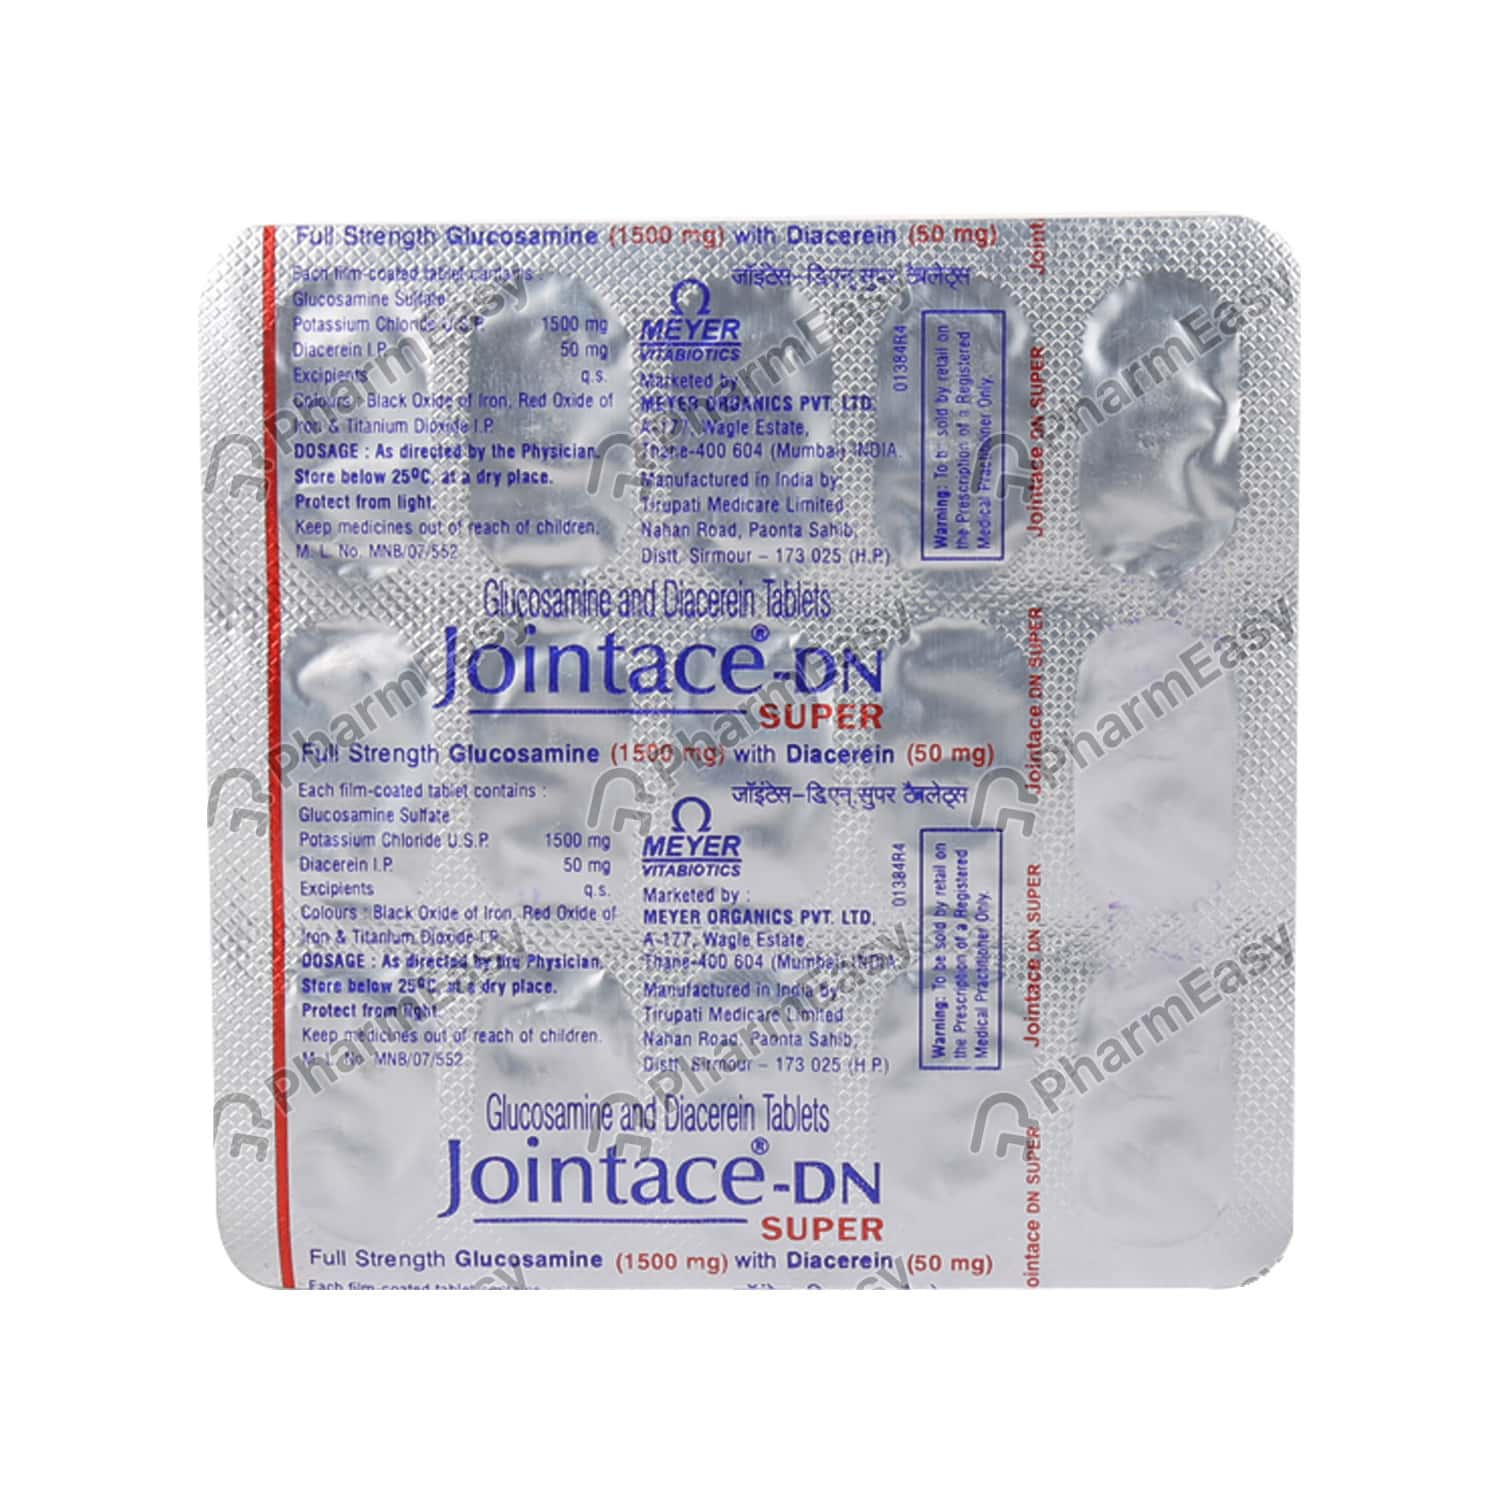 Jointace Dn Super Tab 15's